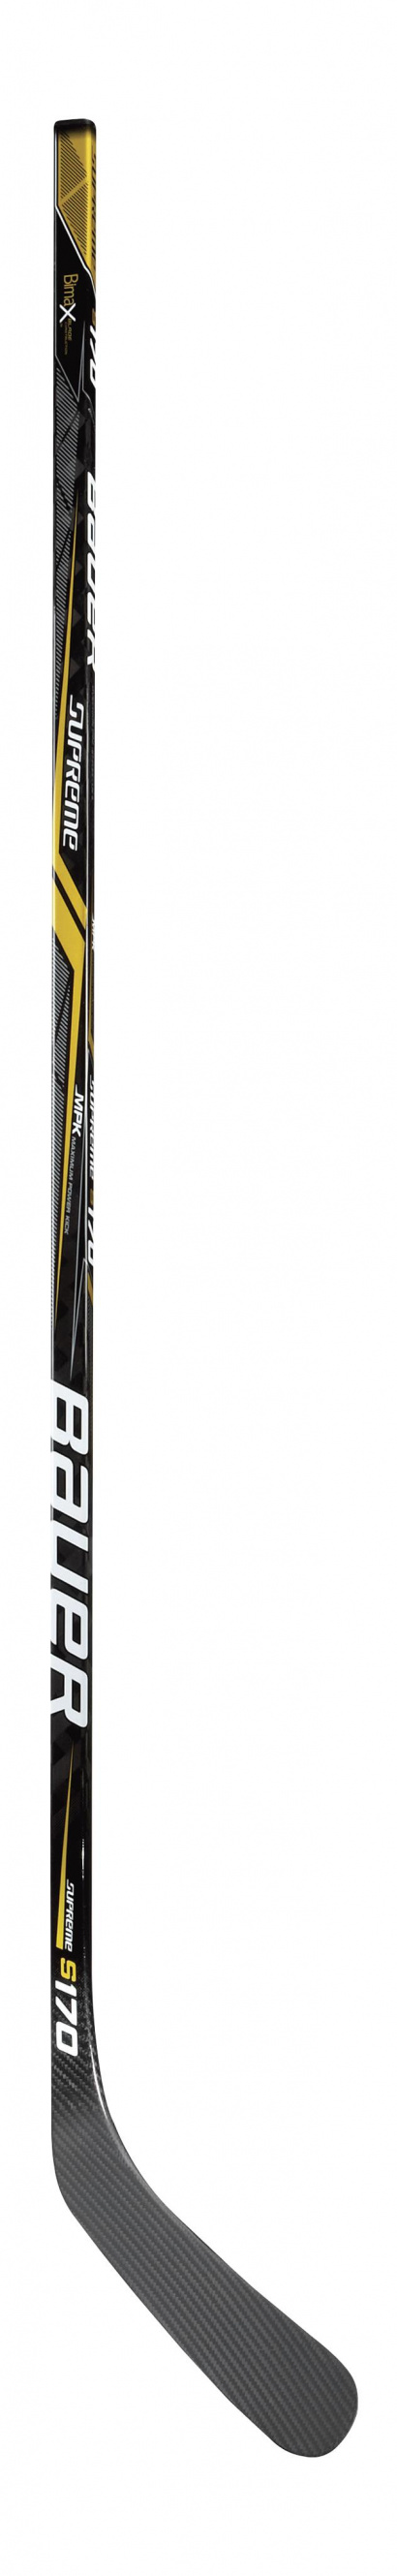 Hockey Stick Bauer SUPREME S170 Grip Int 67